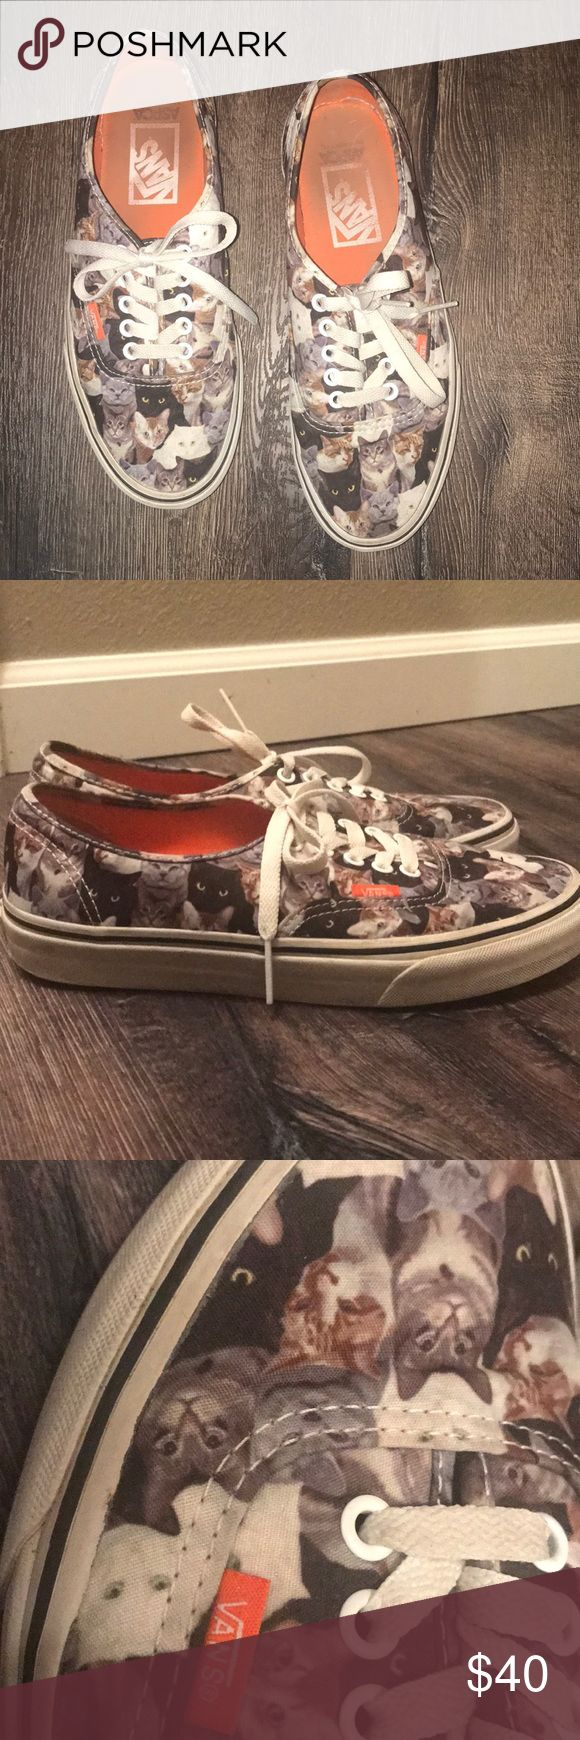 Vans Cat Shoes Great condition worn 3x at max! Love them just never wear them! Necessity for anyone who loves Cats or just looks great in them! Willing to be flexible on price! Vans Shoes Sneakers